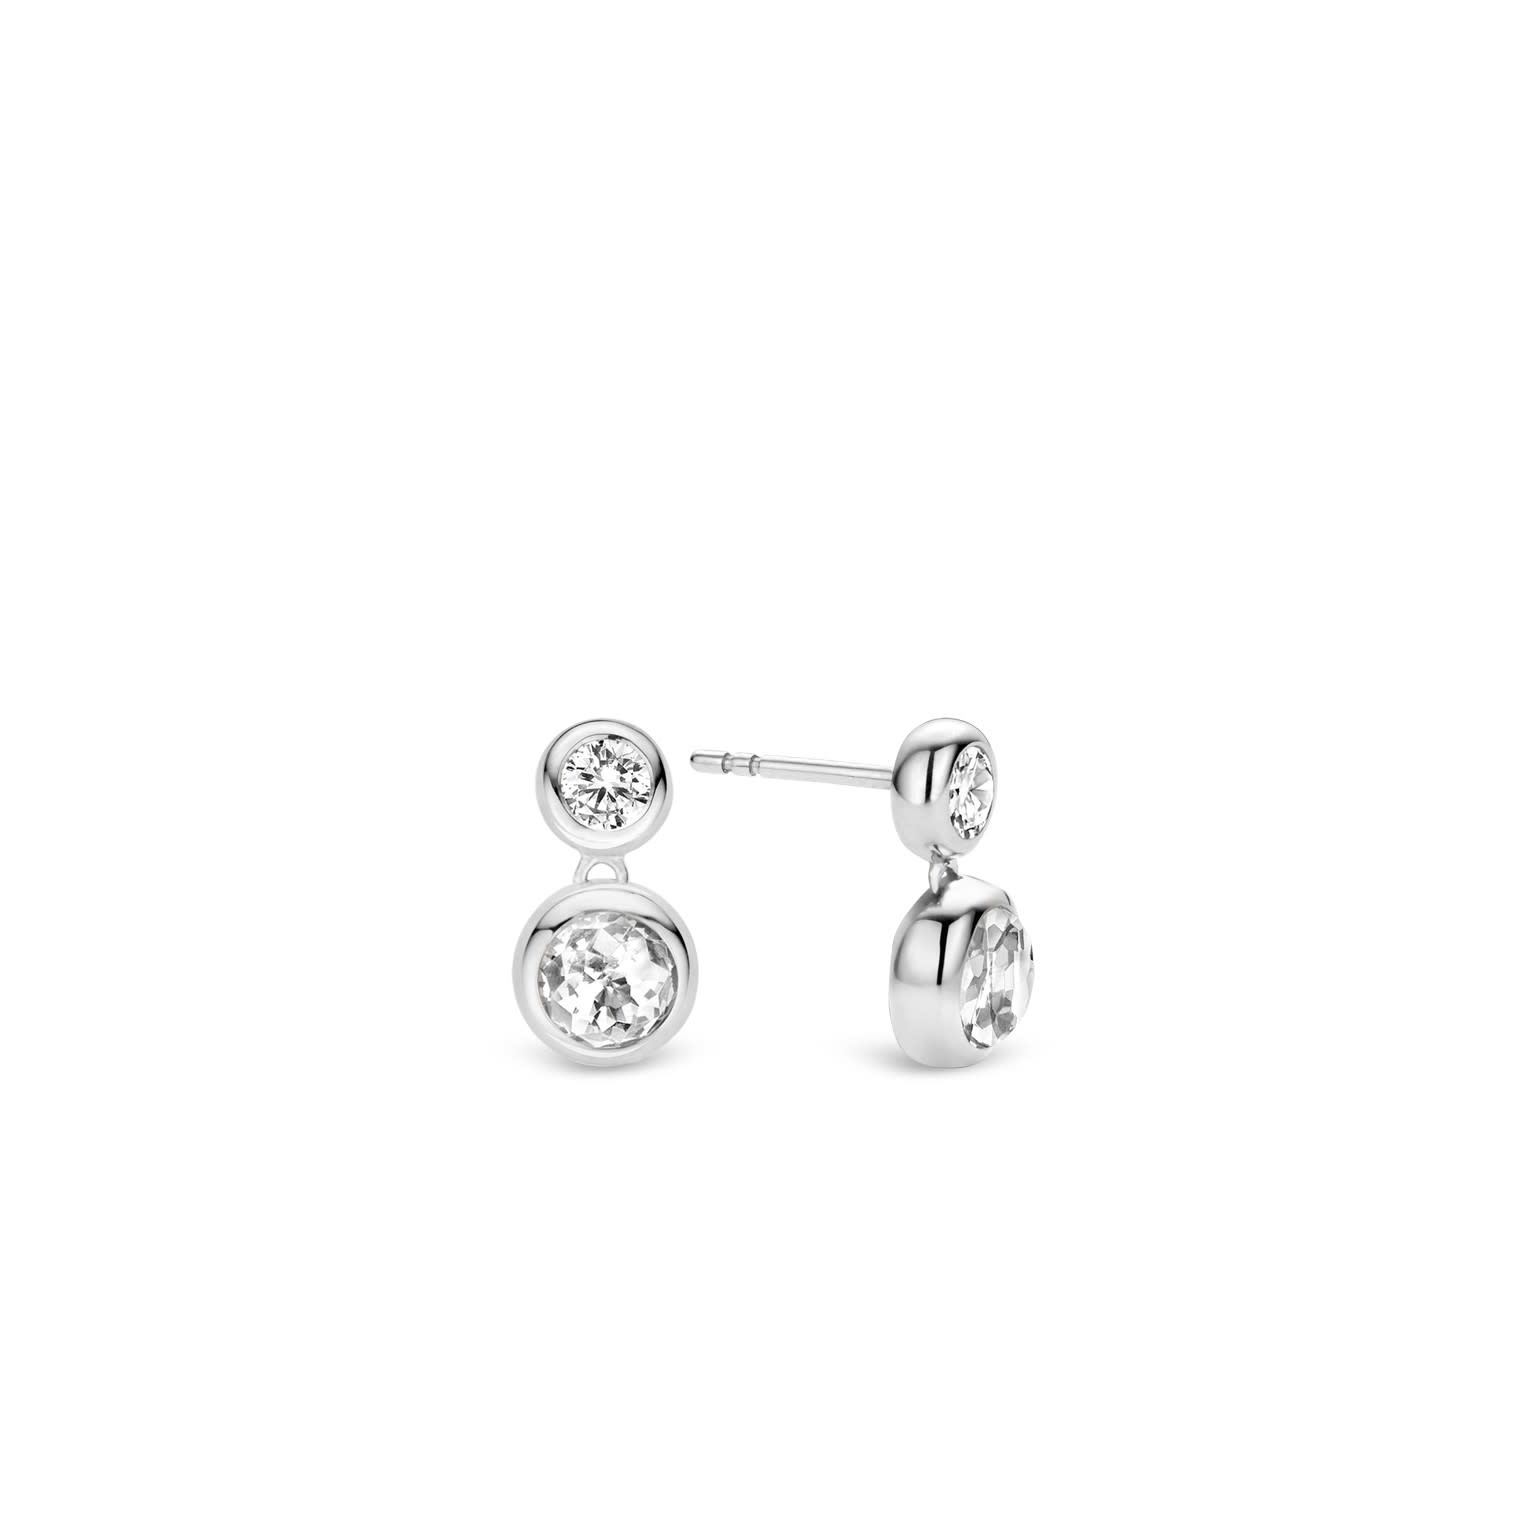 TI SENTO - Milano Earrings 7746ZI-1